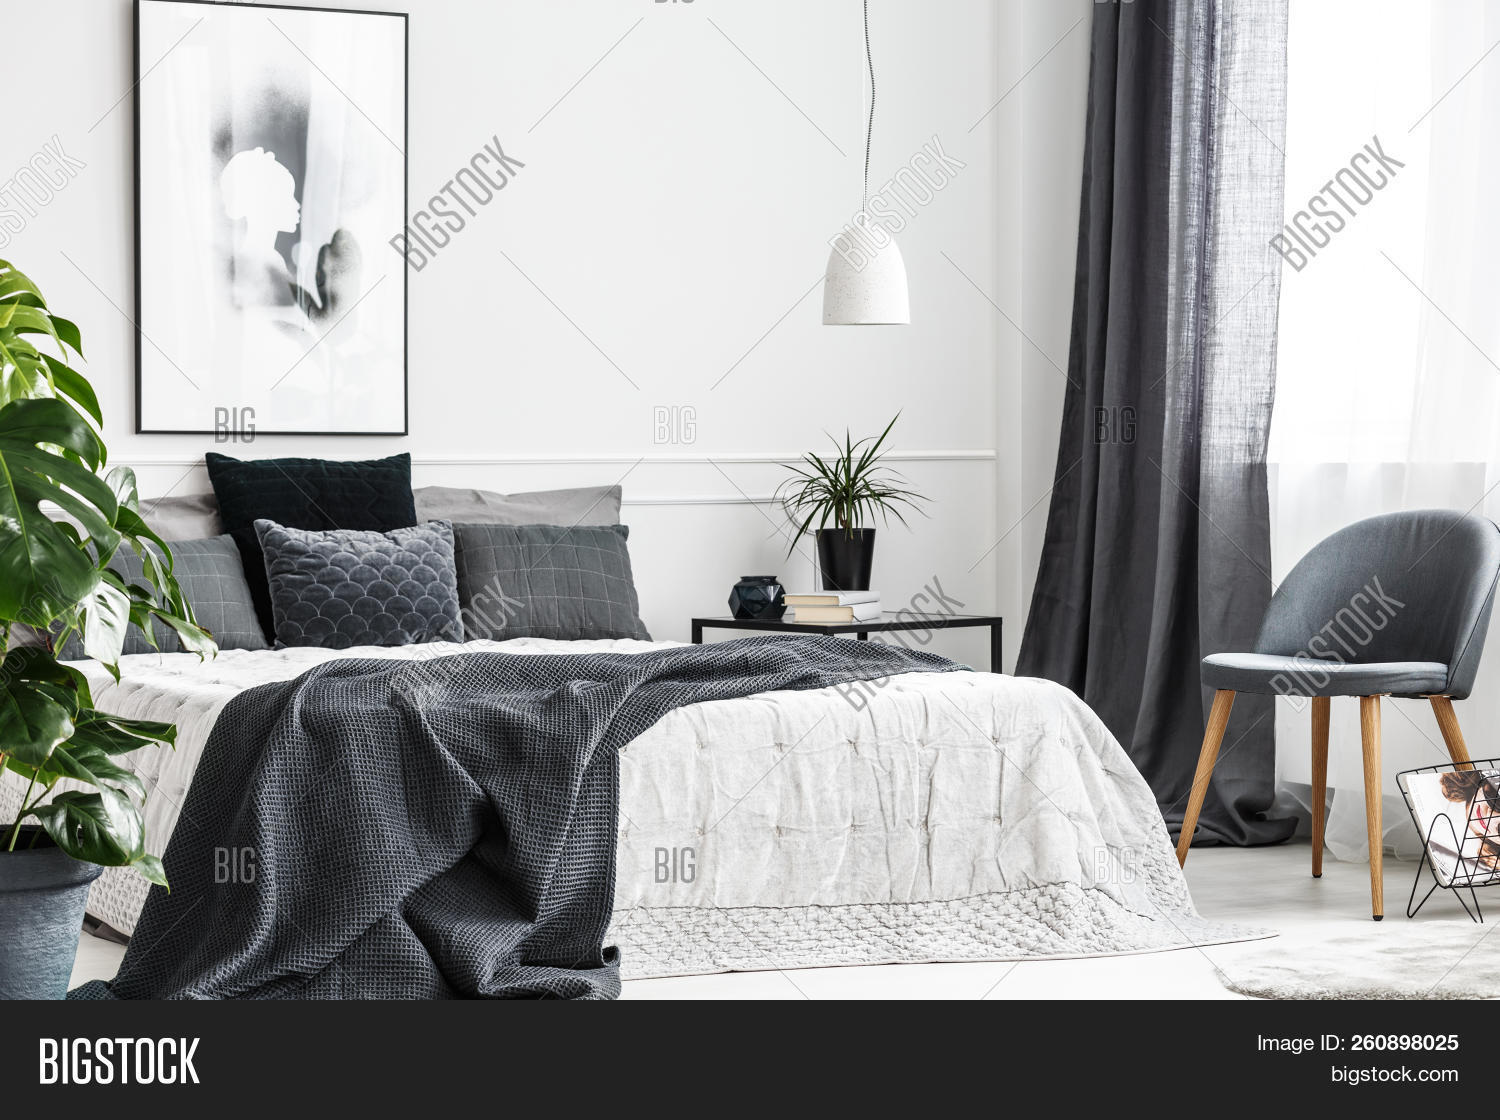 Modern, Gray Chair With Wooden Legs By A Window Of A Bright Bedroom Interior With A Dark Gray Blanke